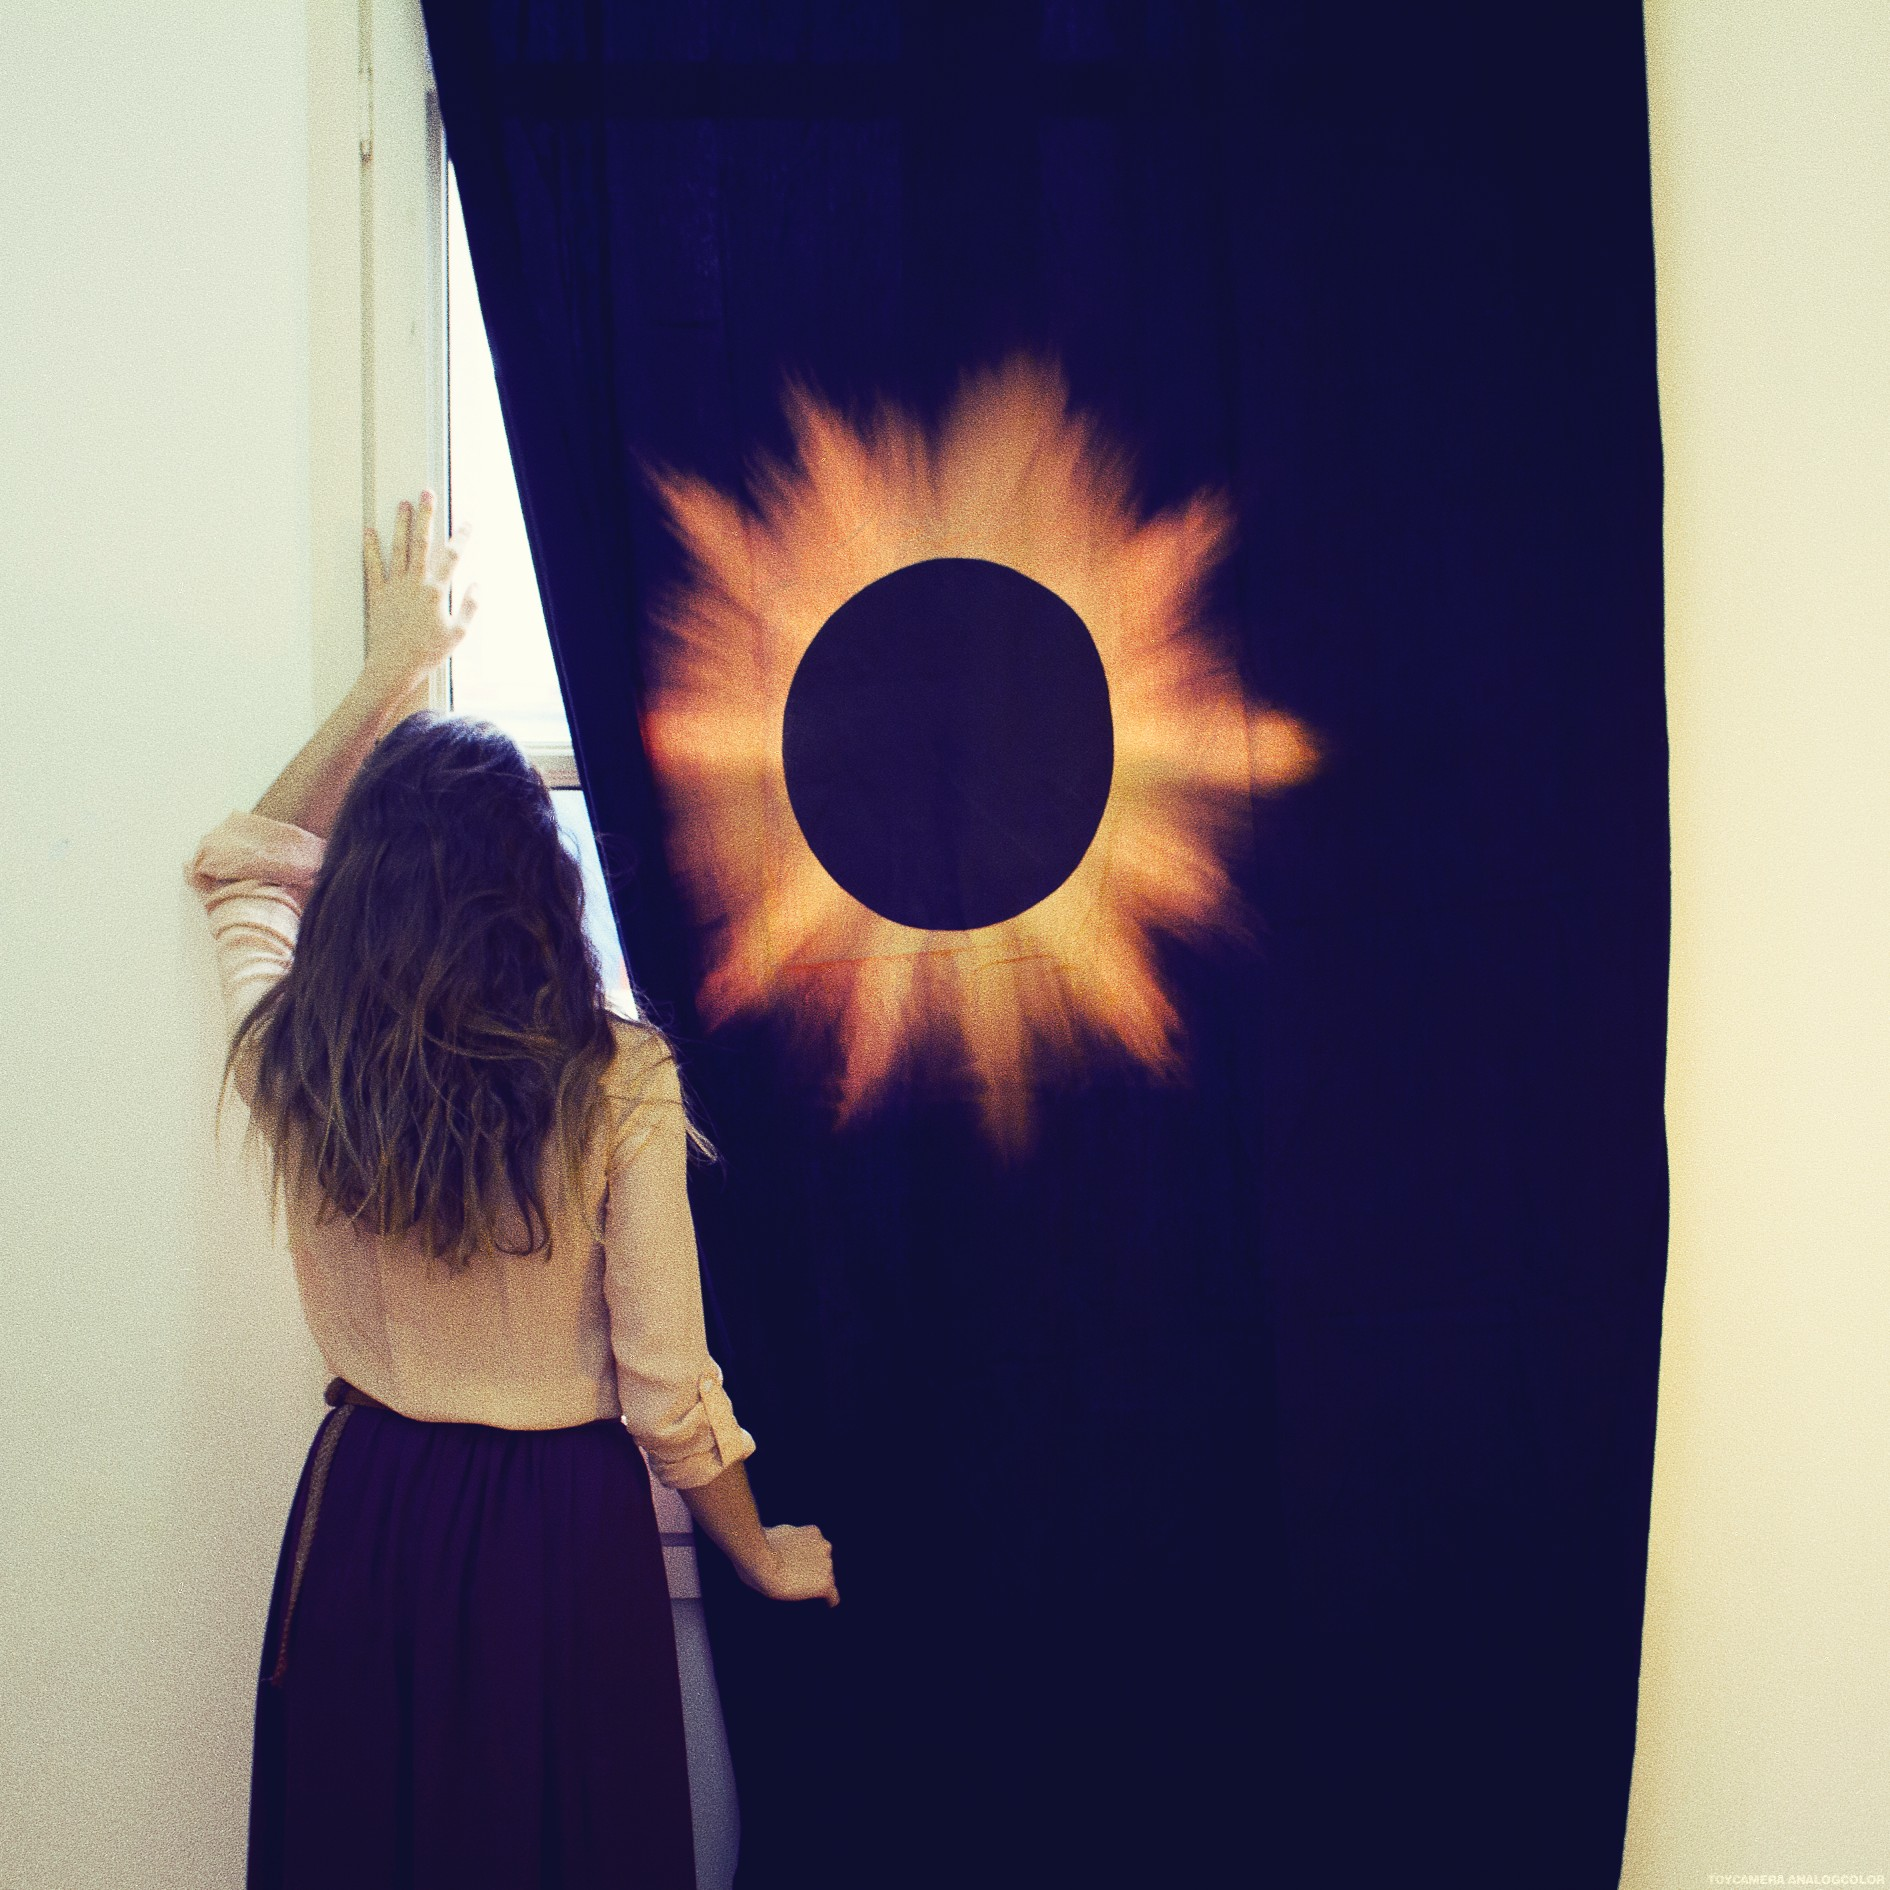 Black Eclipse on Black Curtains